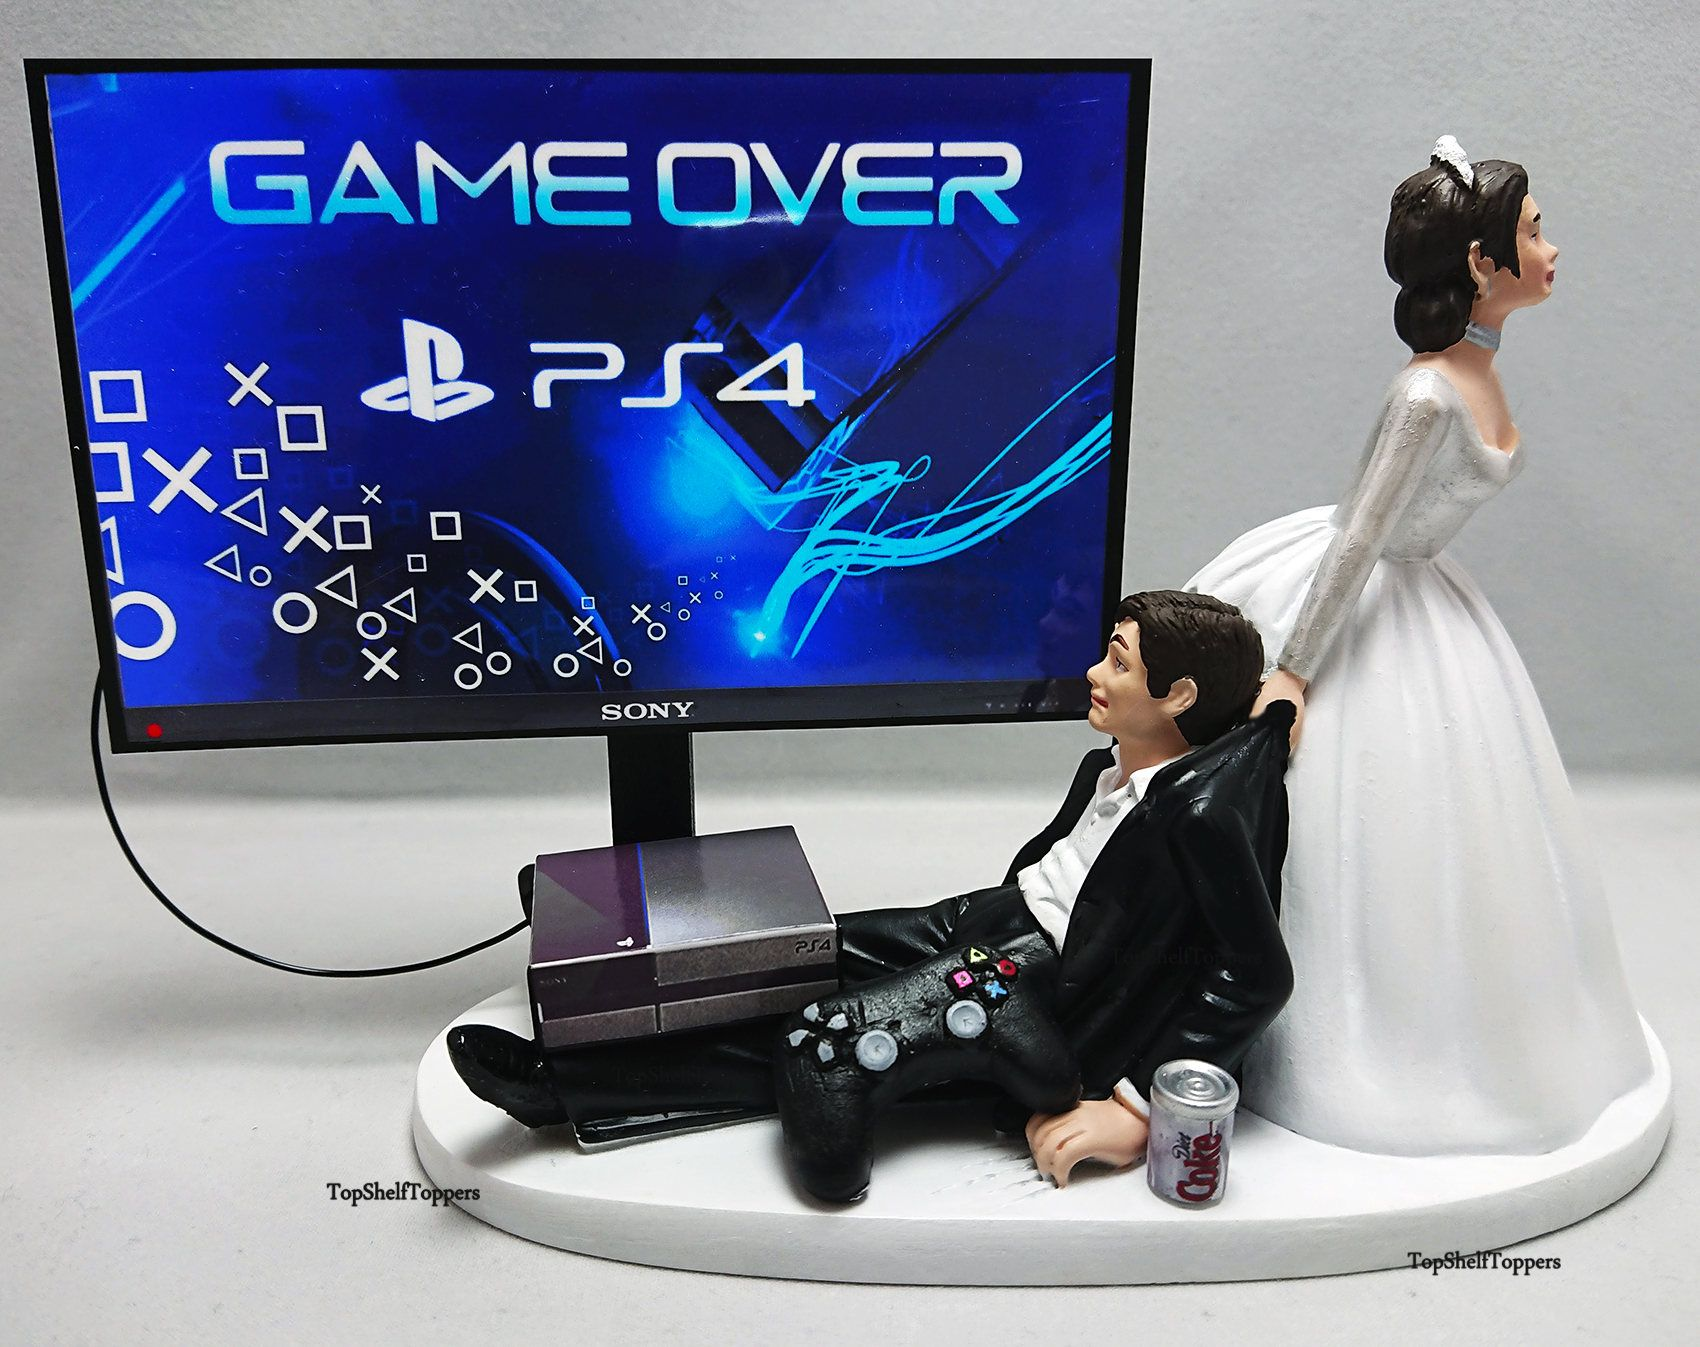 Wedding Cake Topper Game Over Ps4 Funny Gamer Grooms Cake